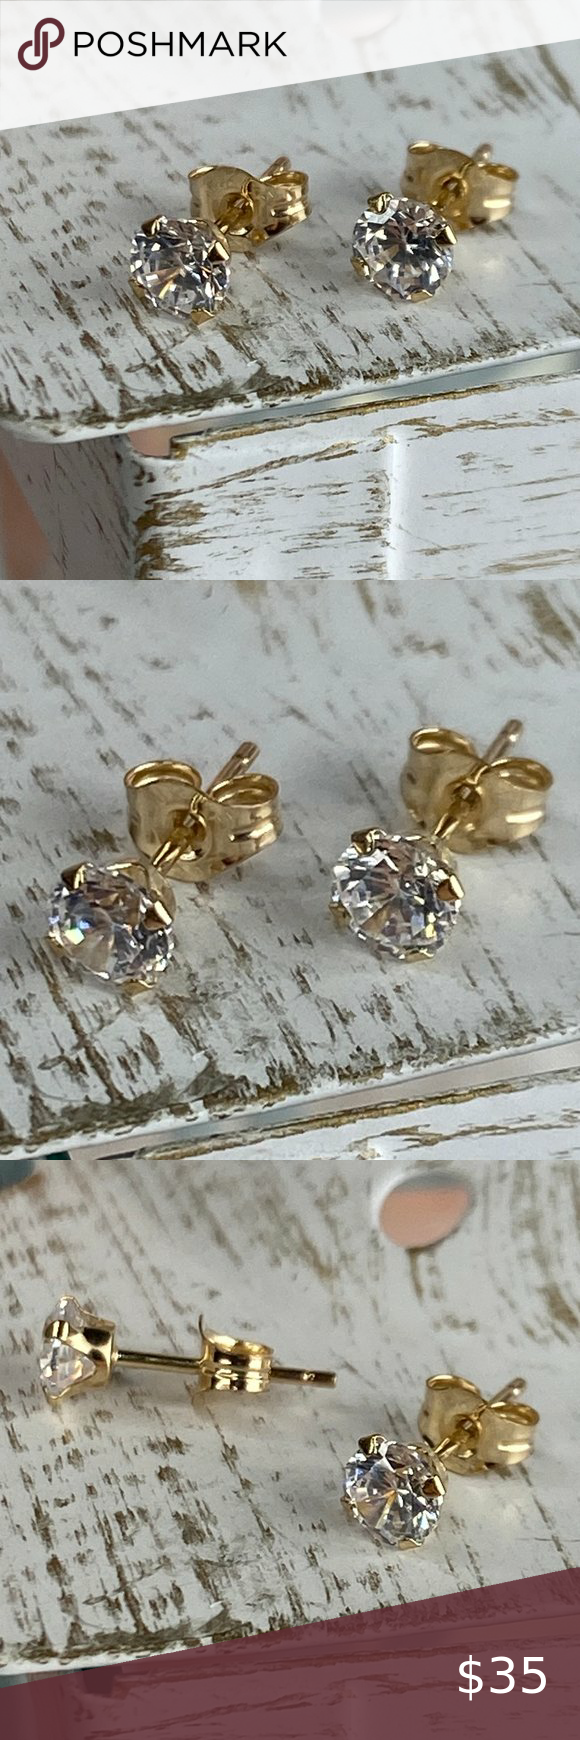 Solid 10k Gold Cubic Zirconia Stud Earrings Boutique In 2020 With Images Stud Earrings Cz Stud Earrings Women Jewelry